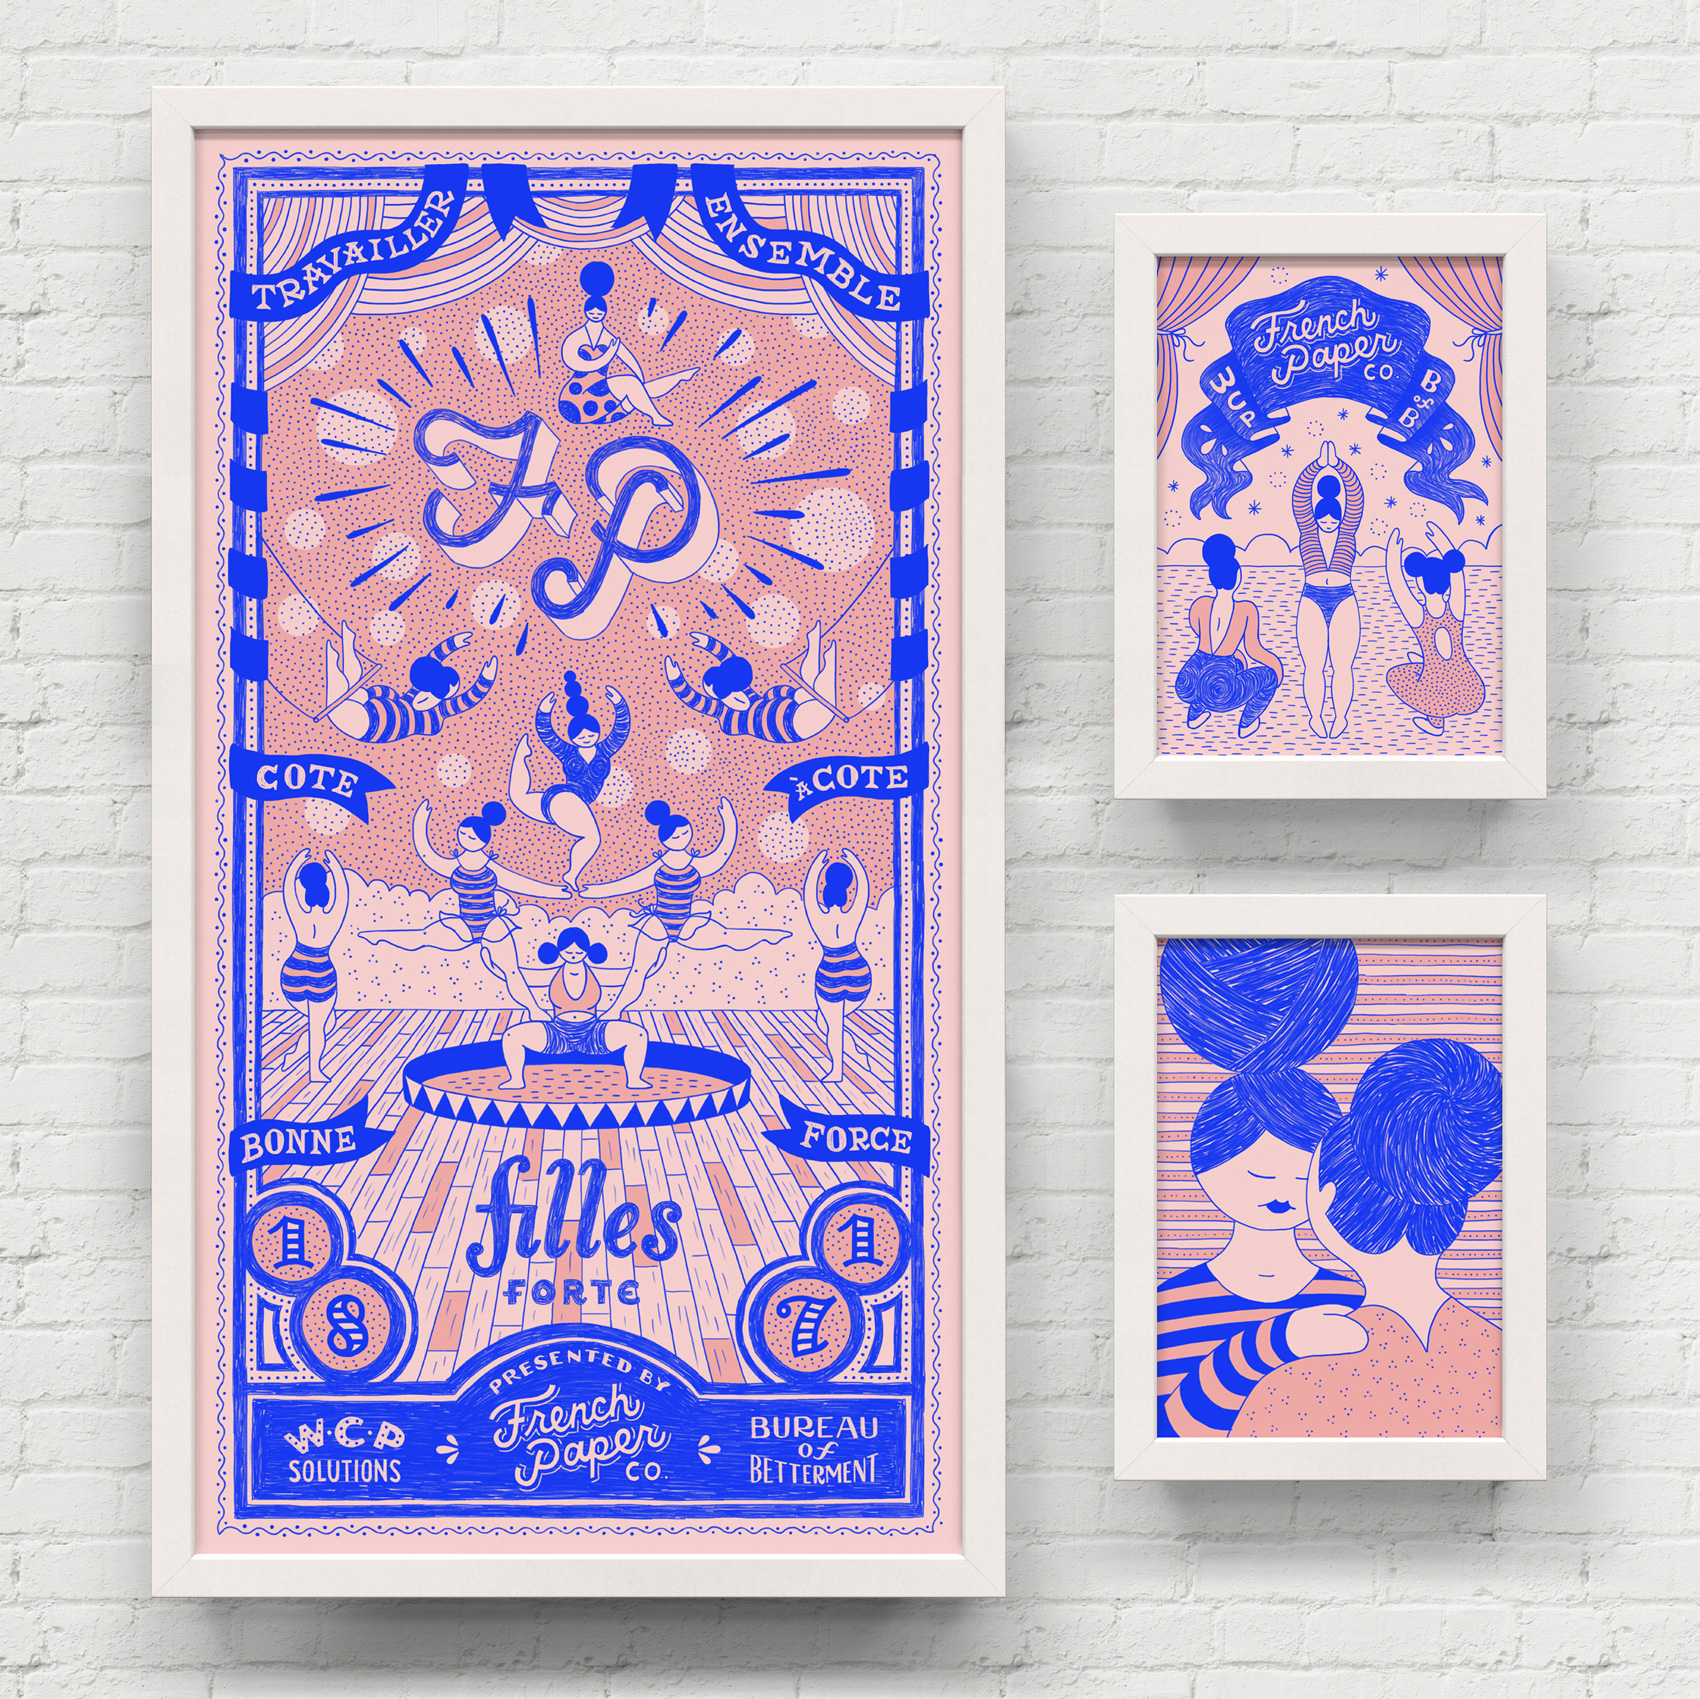 Trio of framed posters, blue ink on pink paper, of french circus performers.